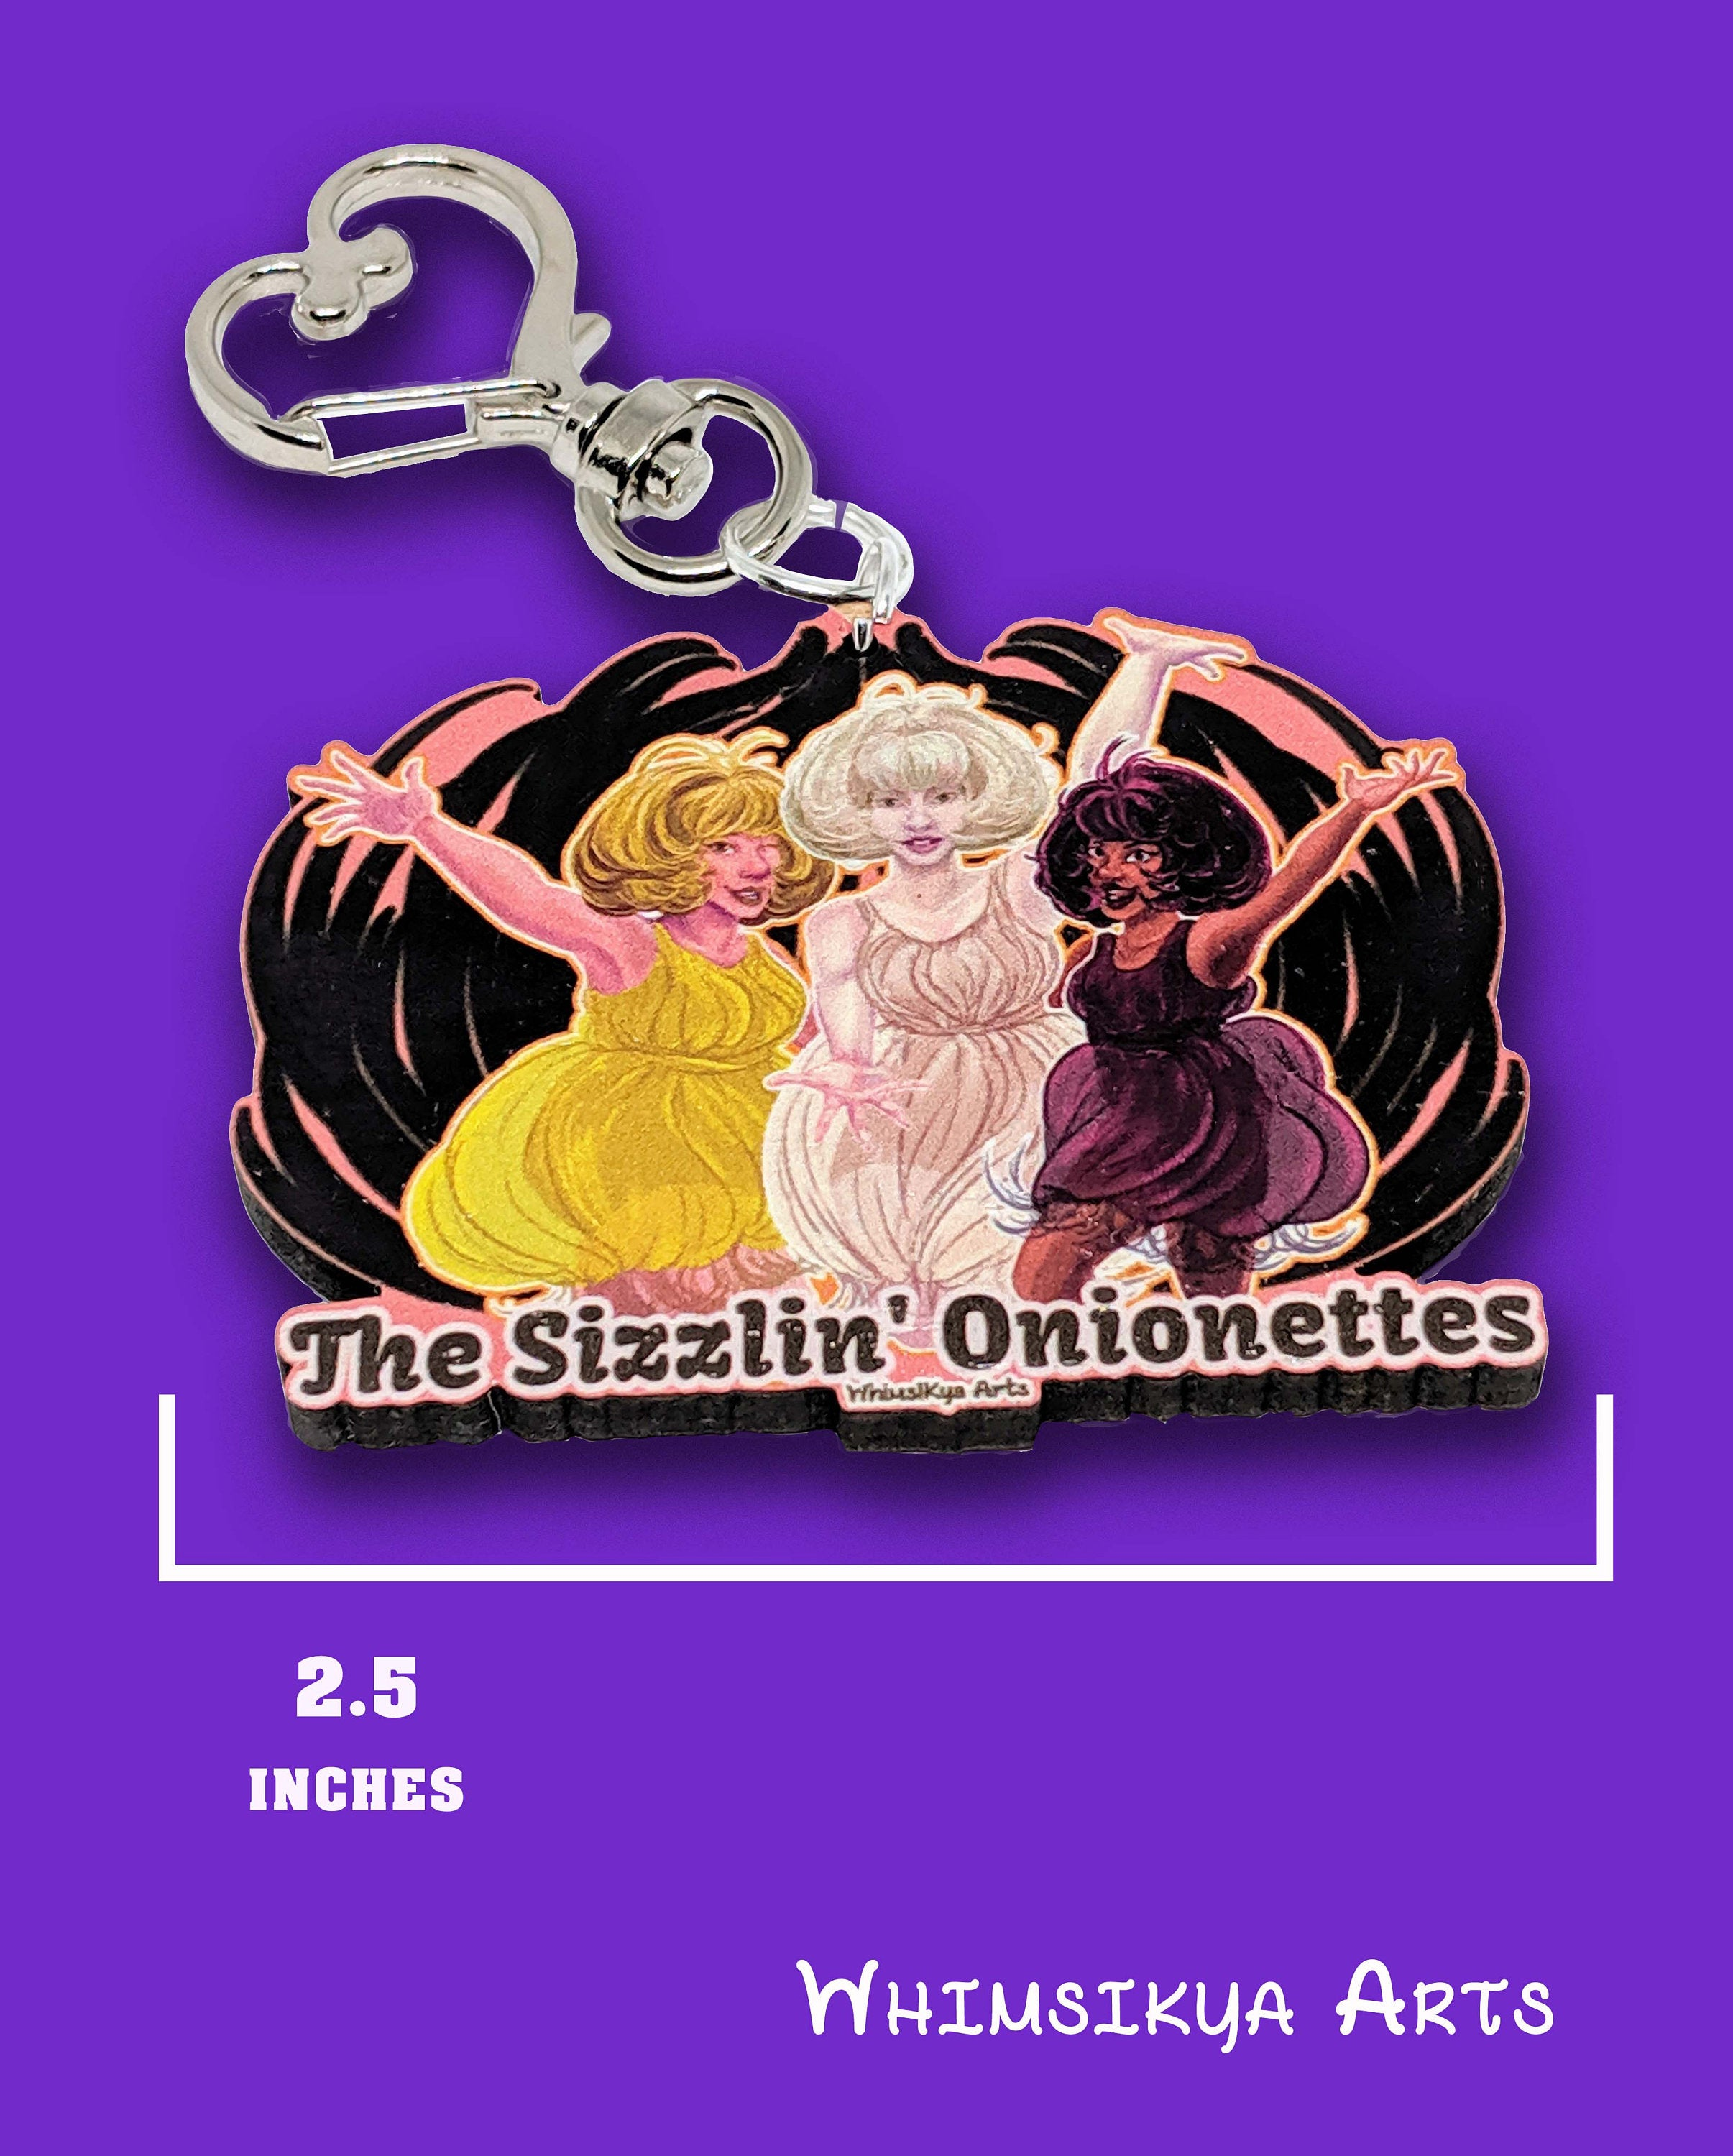 The Sizzlin Onionettes Keychain